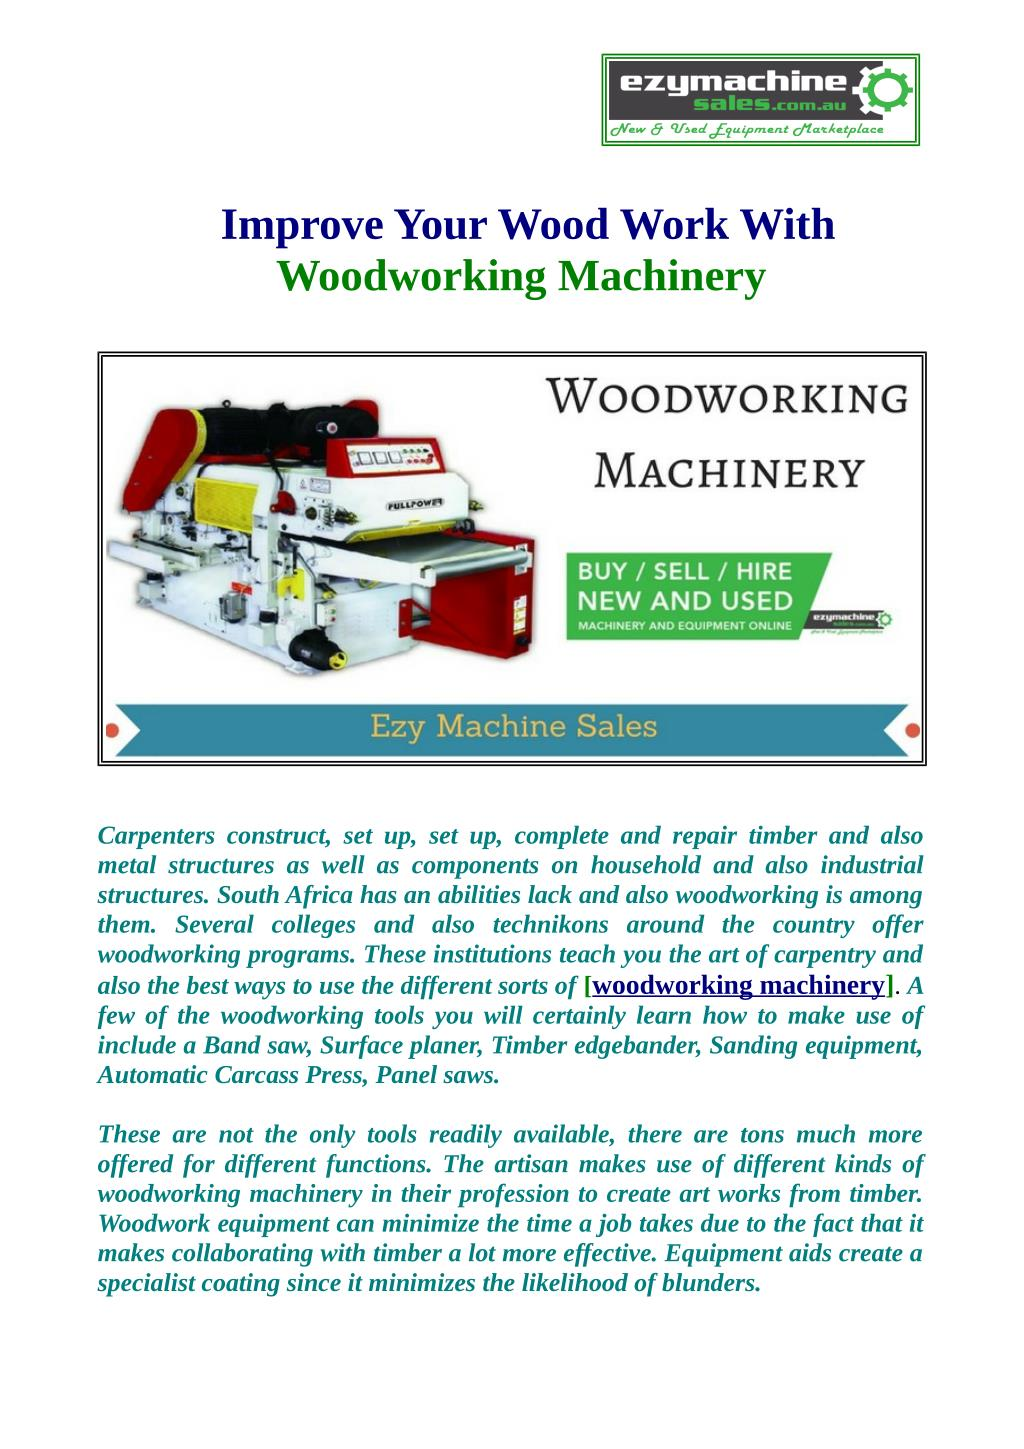 Ppt Use Woodworking Machinery And Improvement Your Wood Work Powerpoint Presentation Id 7466632